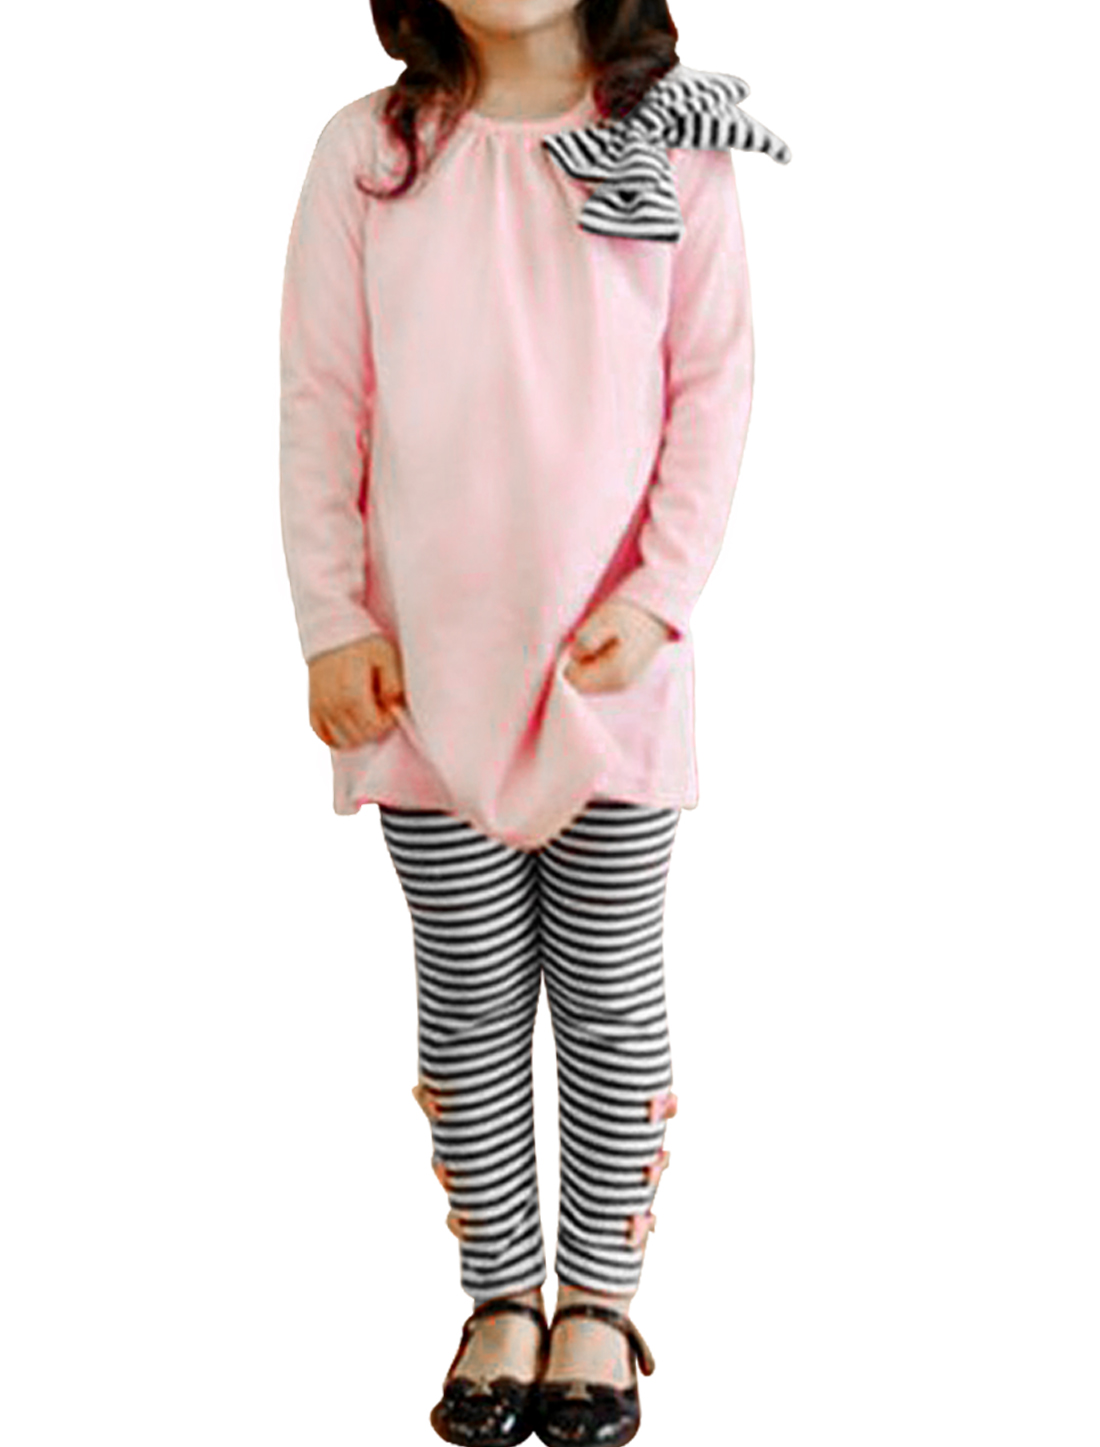 Spring Girls Pullover Shirt & Elastic Waist Pants Pink Black 5